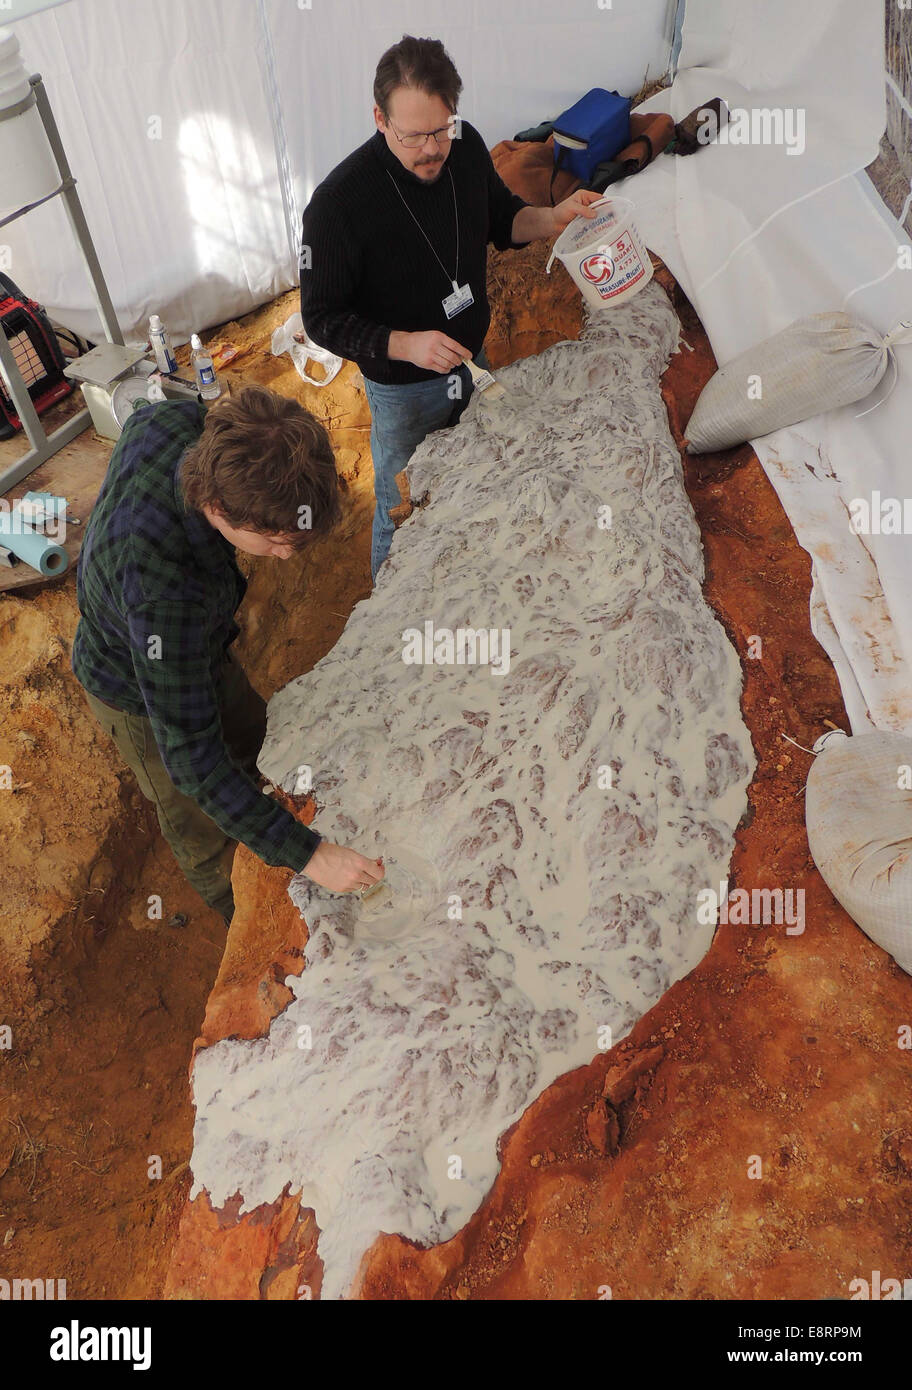 Michael Godfrey (left) and Perry Carsley (center) are coating the dinosaur footprints with a silicone rubber molding - Stock Image